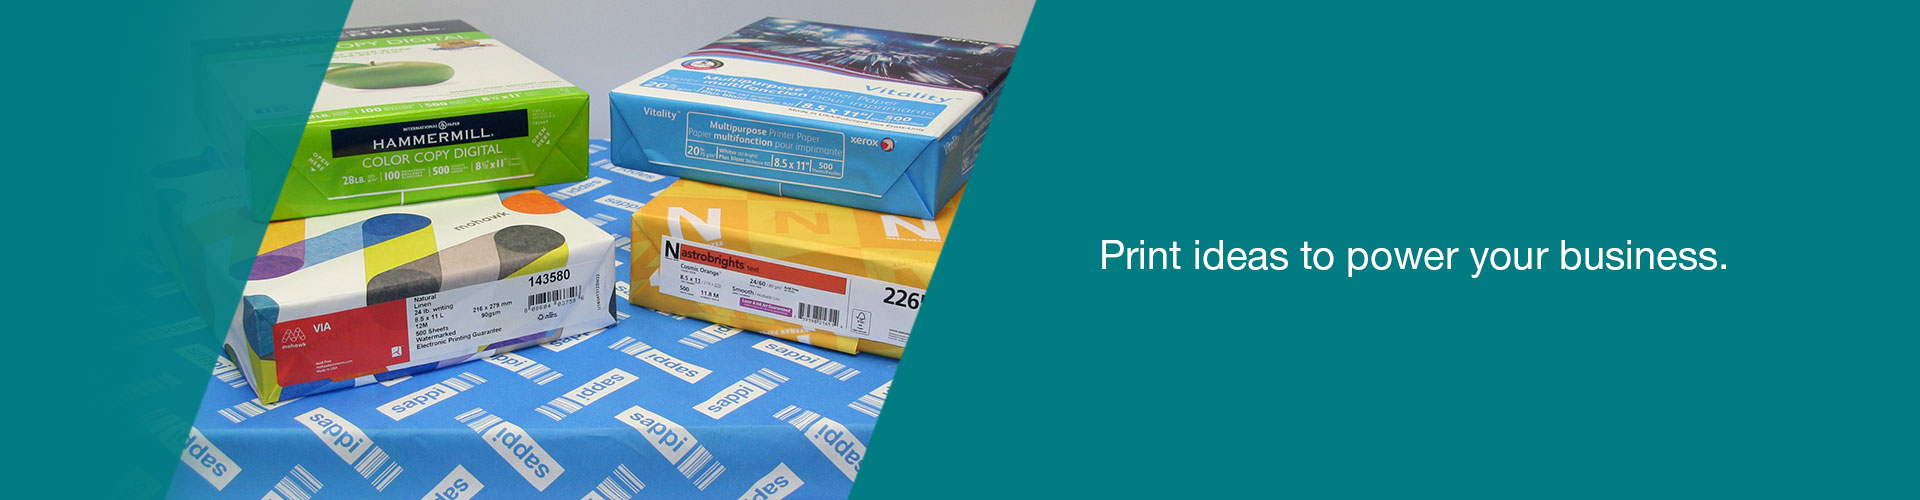 1920x500 Interior Fine Printing papers